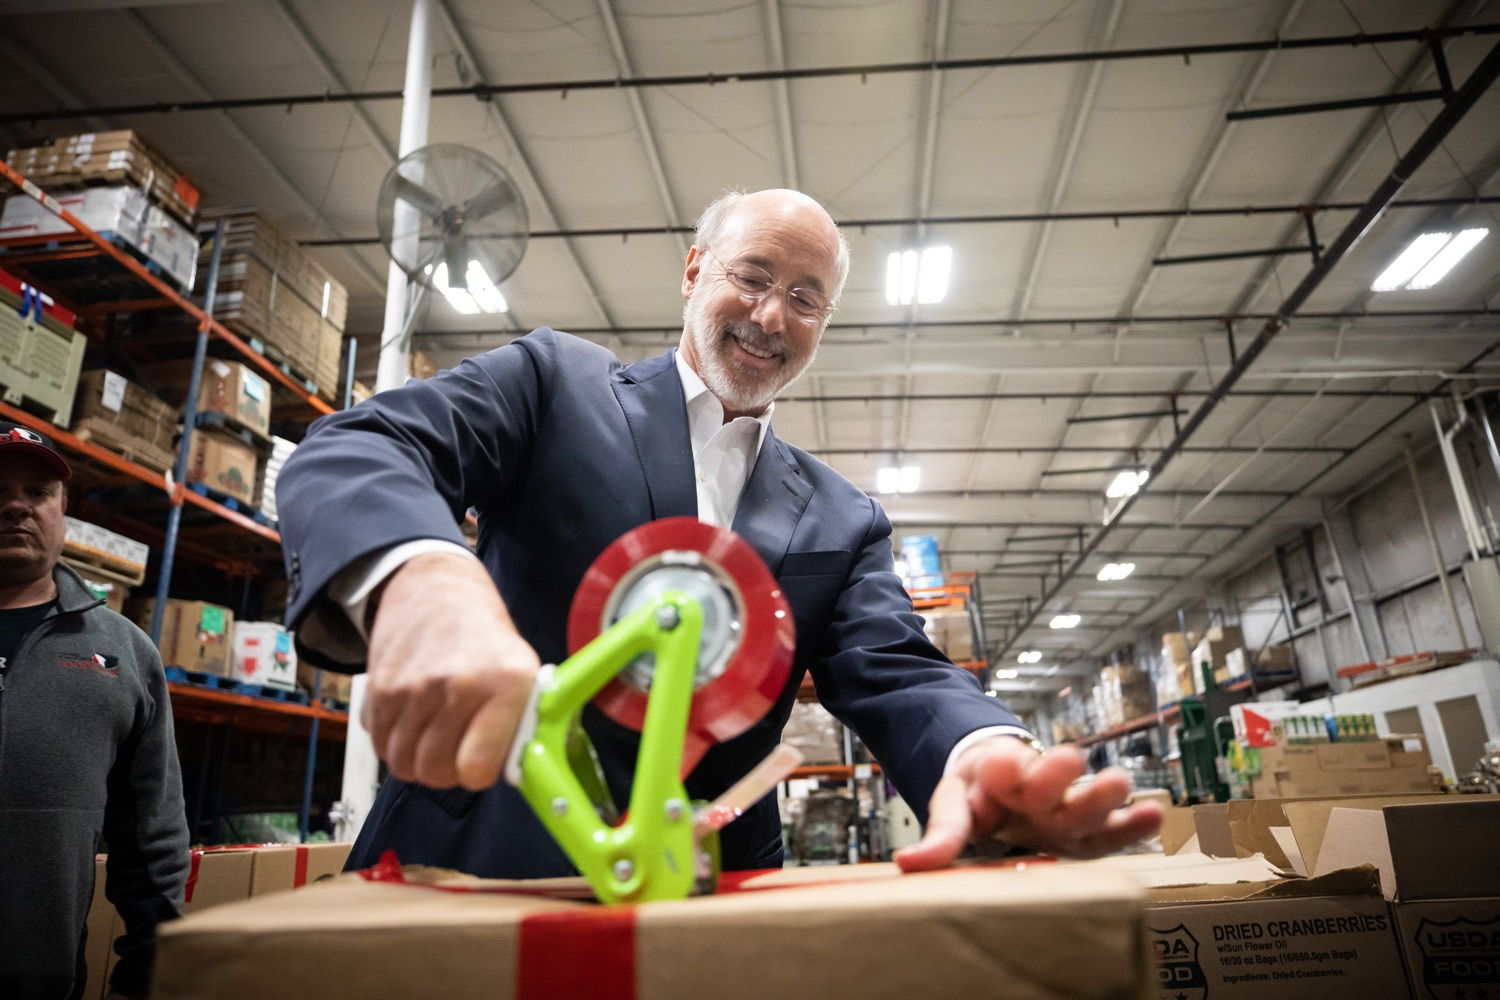 "<a href=""http://filesource.abacast.com/commonwealthofpa/photo/17632_gov_foodbank_volunteering_dz_002.jpg"" target=""_blank"">⇣ Download Photo<br></a>Governor Tom Wolf loading boxes of food at the Central Pennsylvania Food Bank.  The governor and first lady visit the Central Pennsylvania Food Bank in Harrisburg to participate in a volunteer project, packing boxes of food for veterans and their families. Ahead of Thanksgiving and the holiday season, Governor Tom Wolf and First Lady Frances Wolf are reminding Pennsylvanians of the importance of helping each other. Harrisburg, PA  Tuesday November 26, 2019"